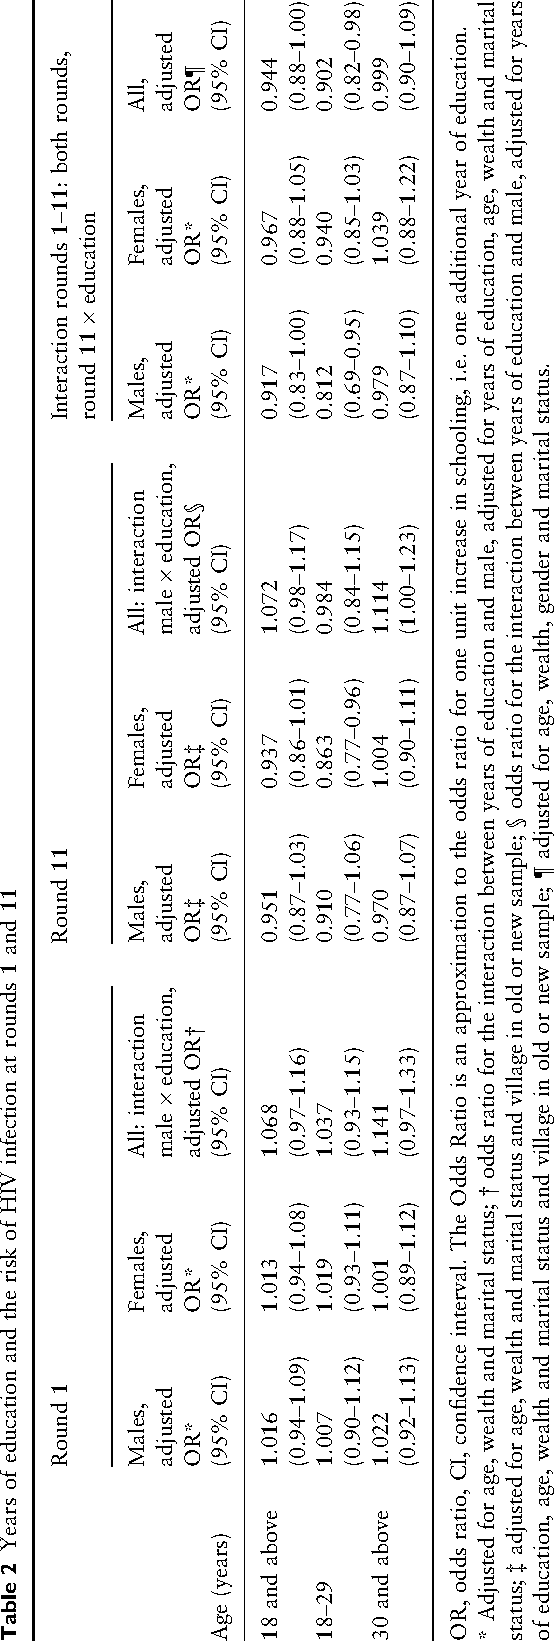 Table 2 shows the relationship between years of